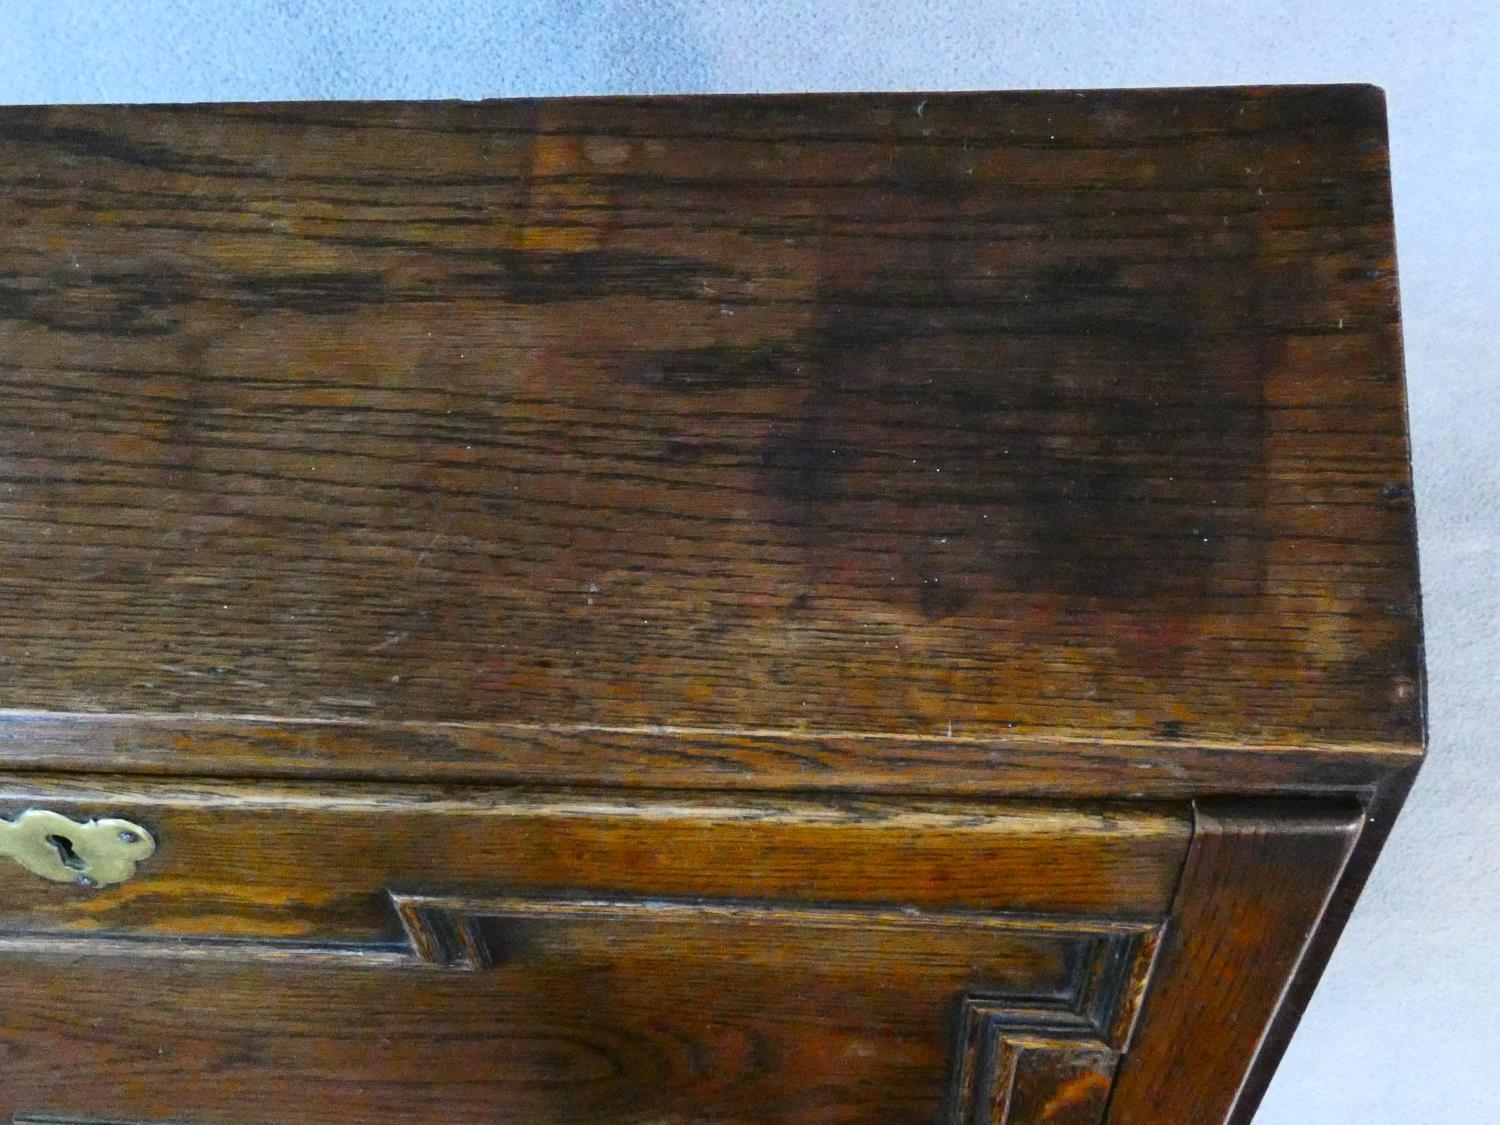 A mid century Jacobean style oak bureau with lozenge inset panels and fall front revealing fitted - Image 12 of 26